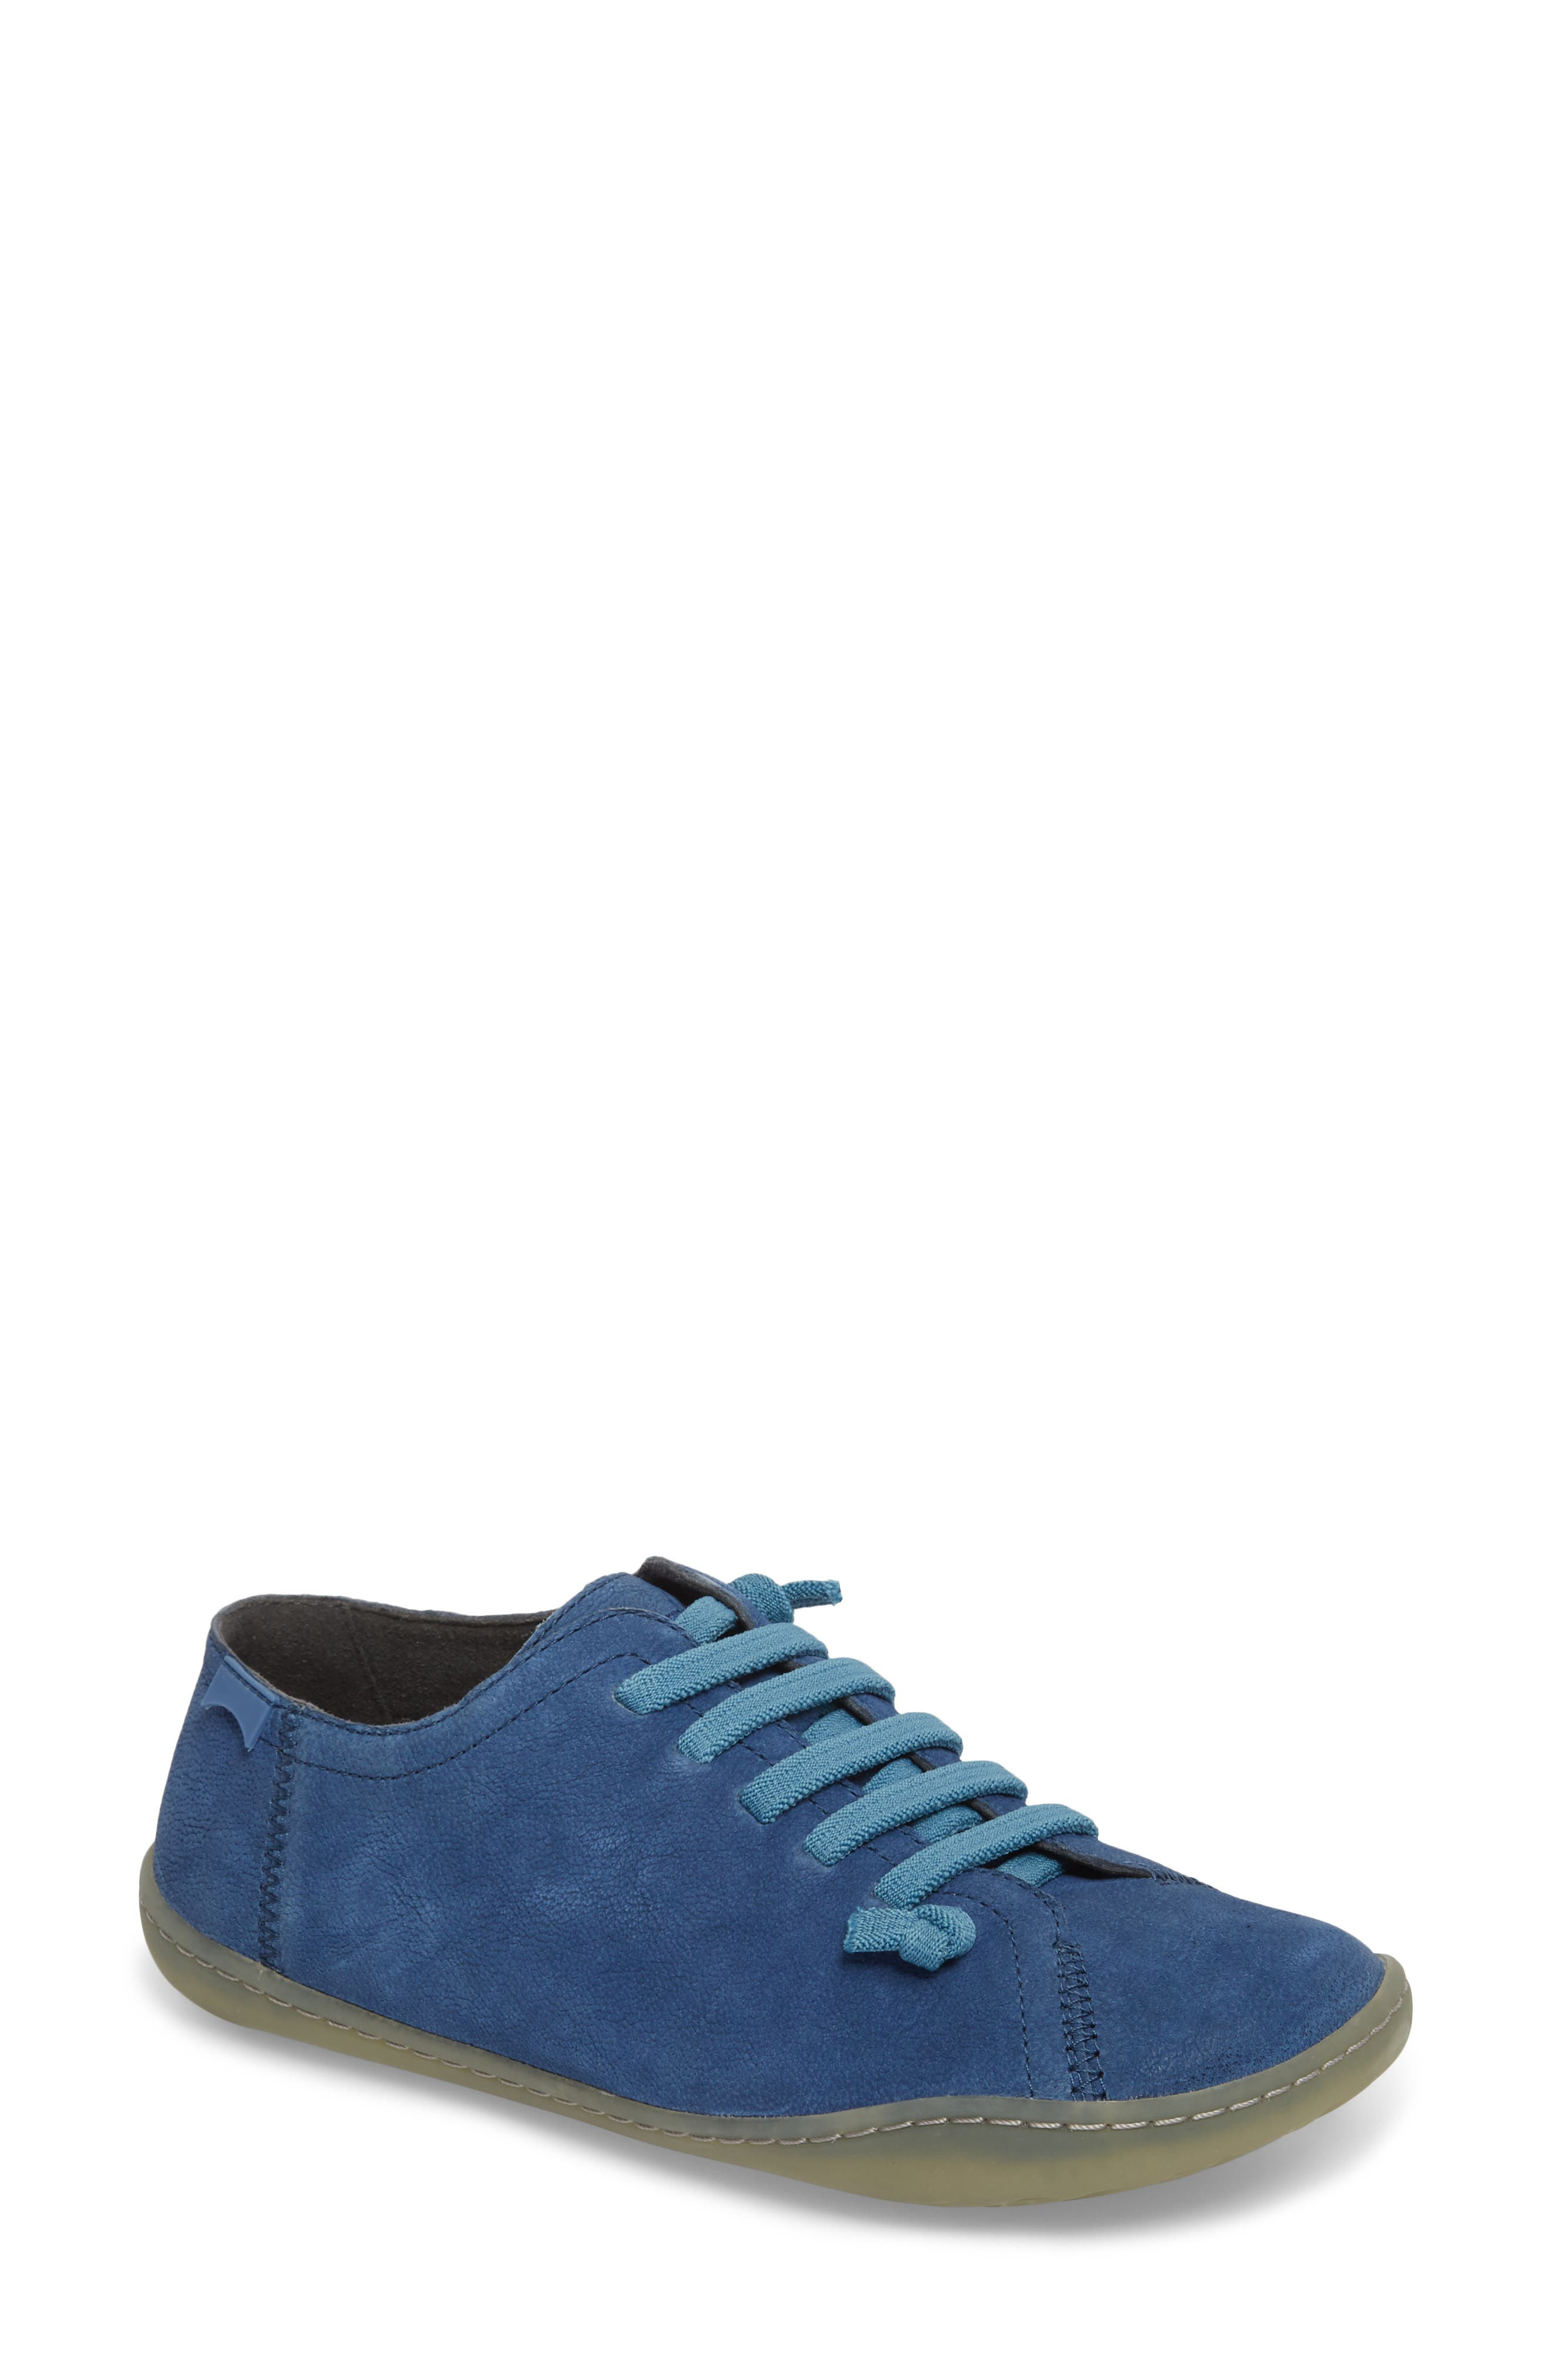 'Peu Cami' Leather Sneaker,                             Main thumbnail 1, color,                             Medium Blue Suede